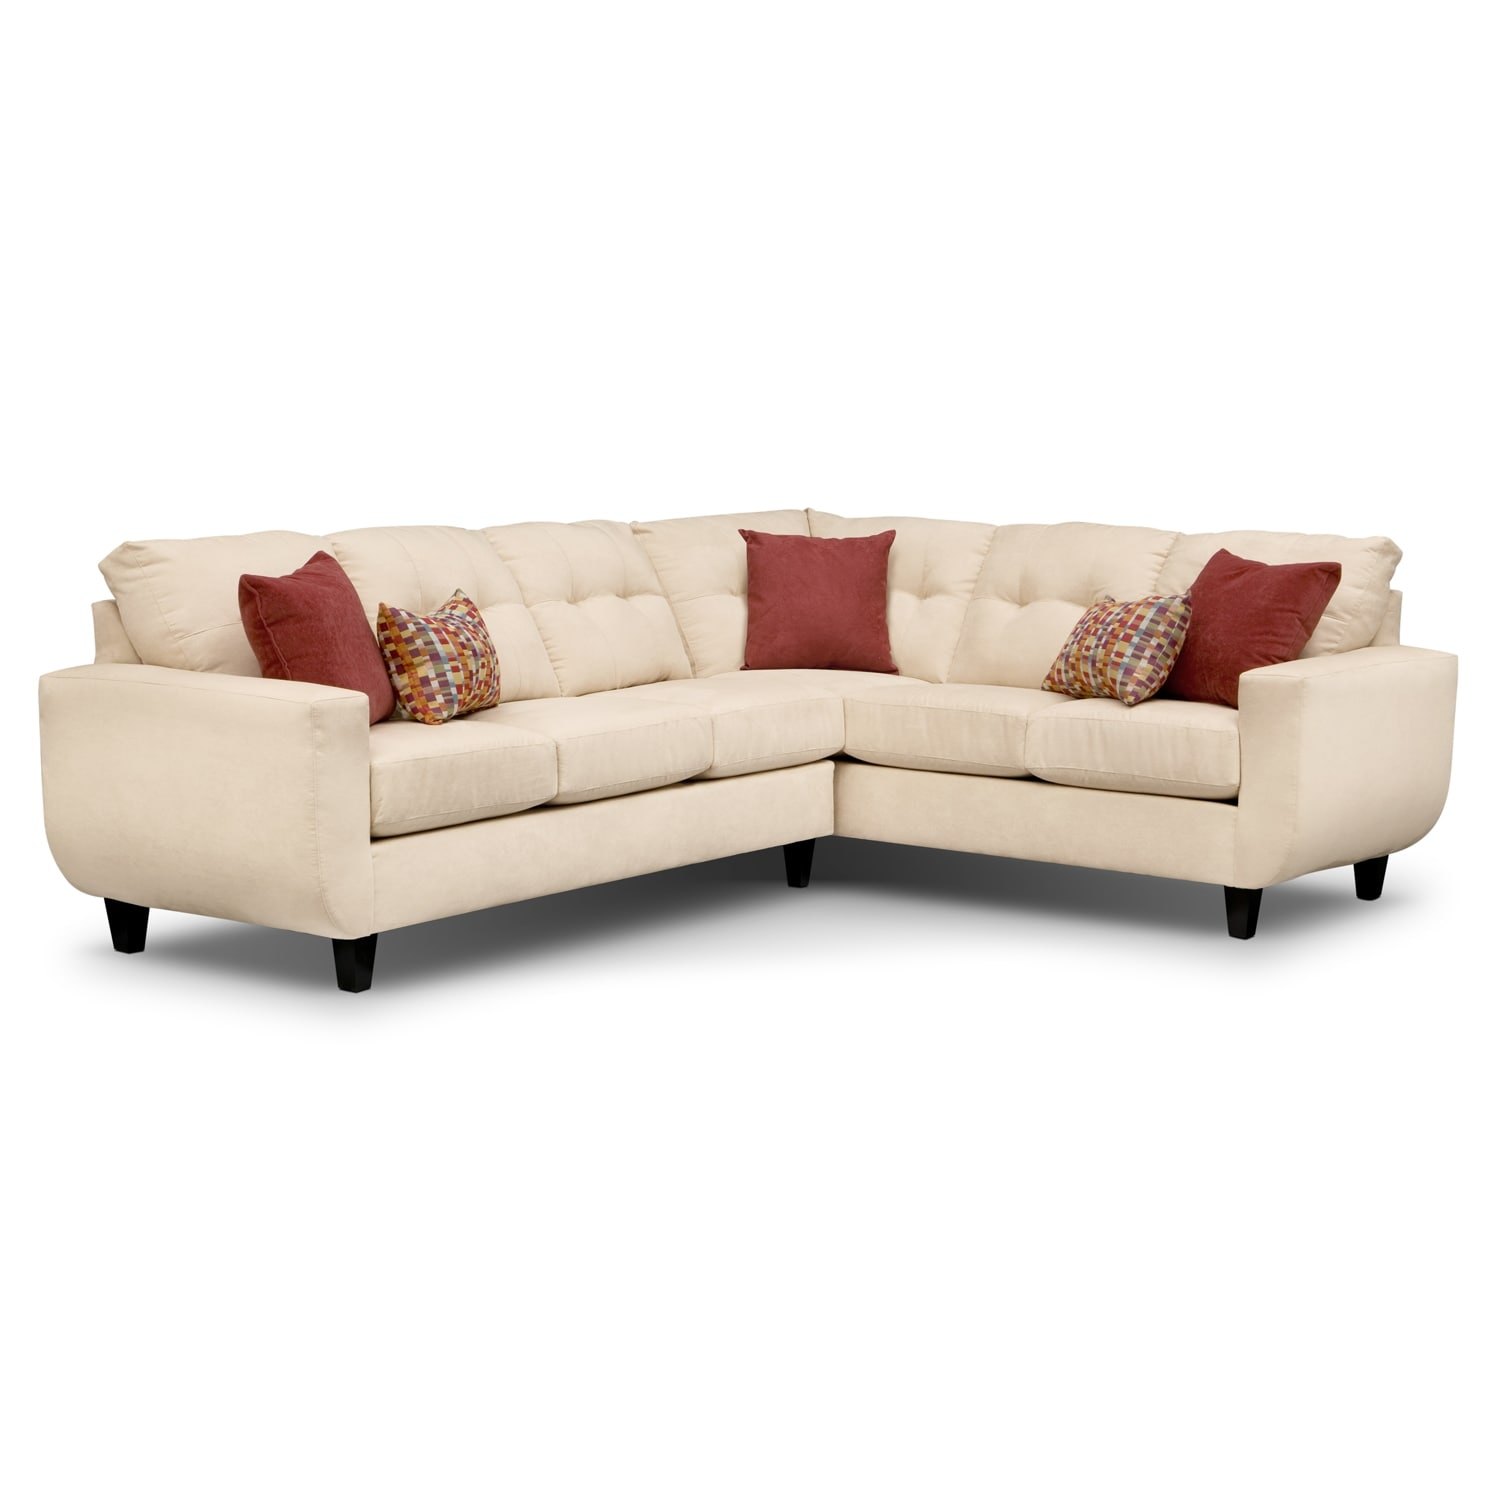 West Village Cream II 2 Pc. Sectional